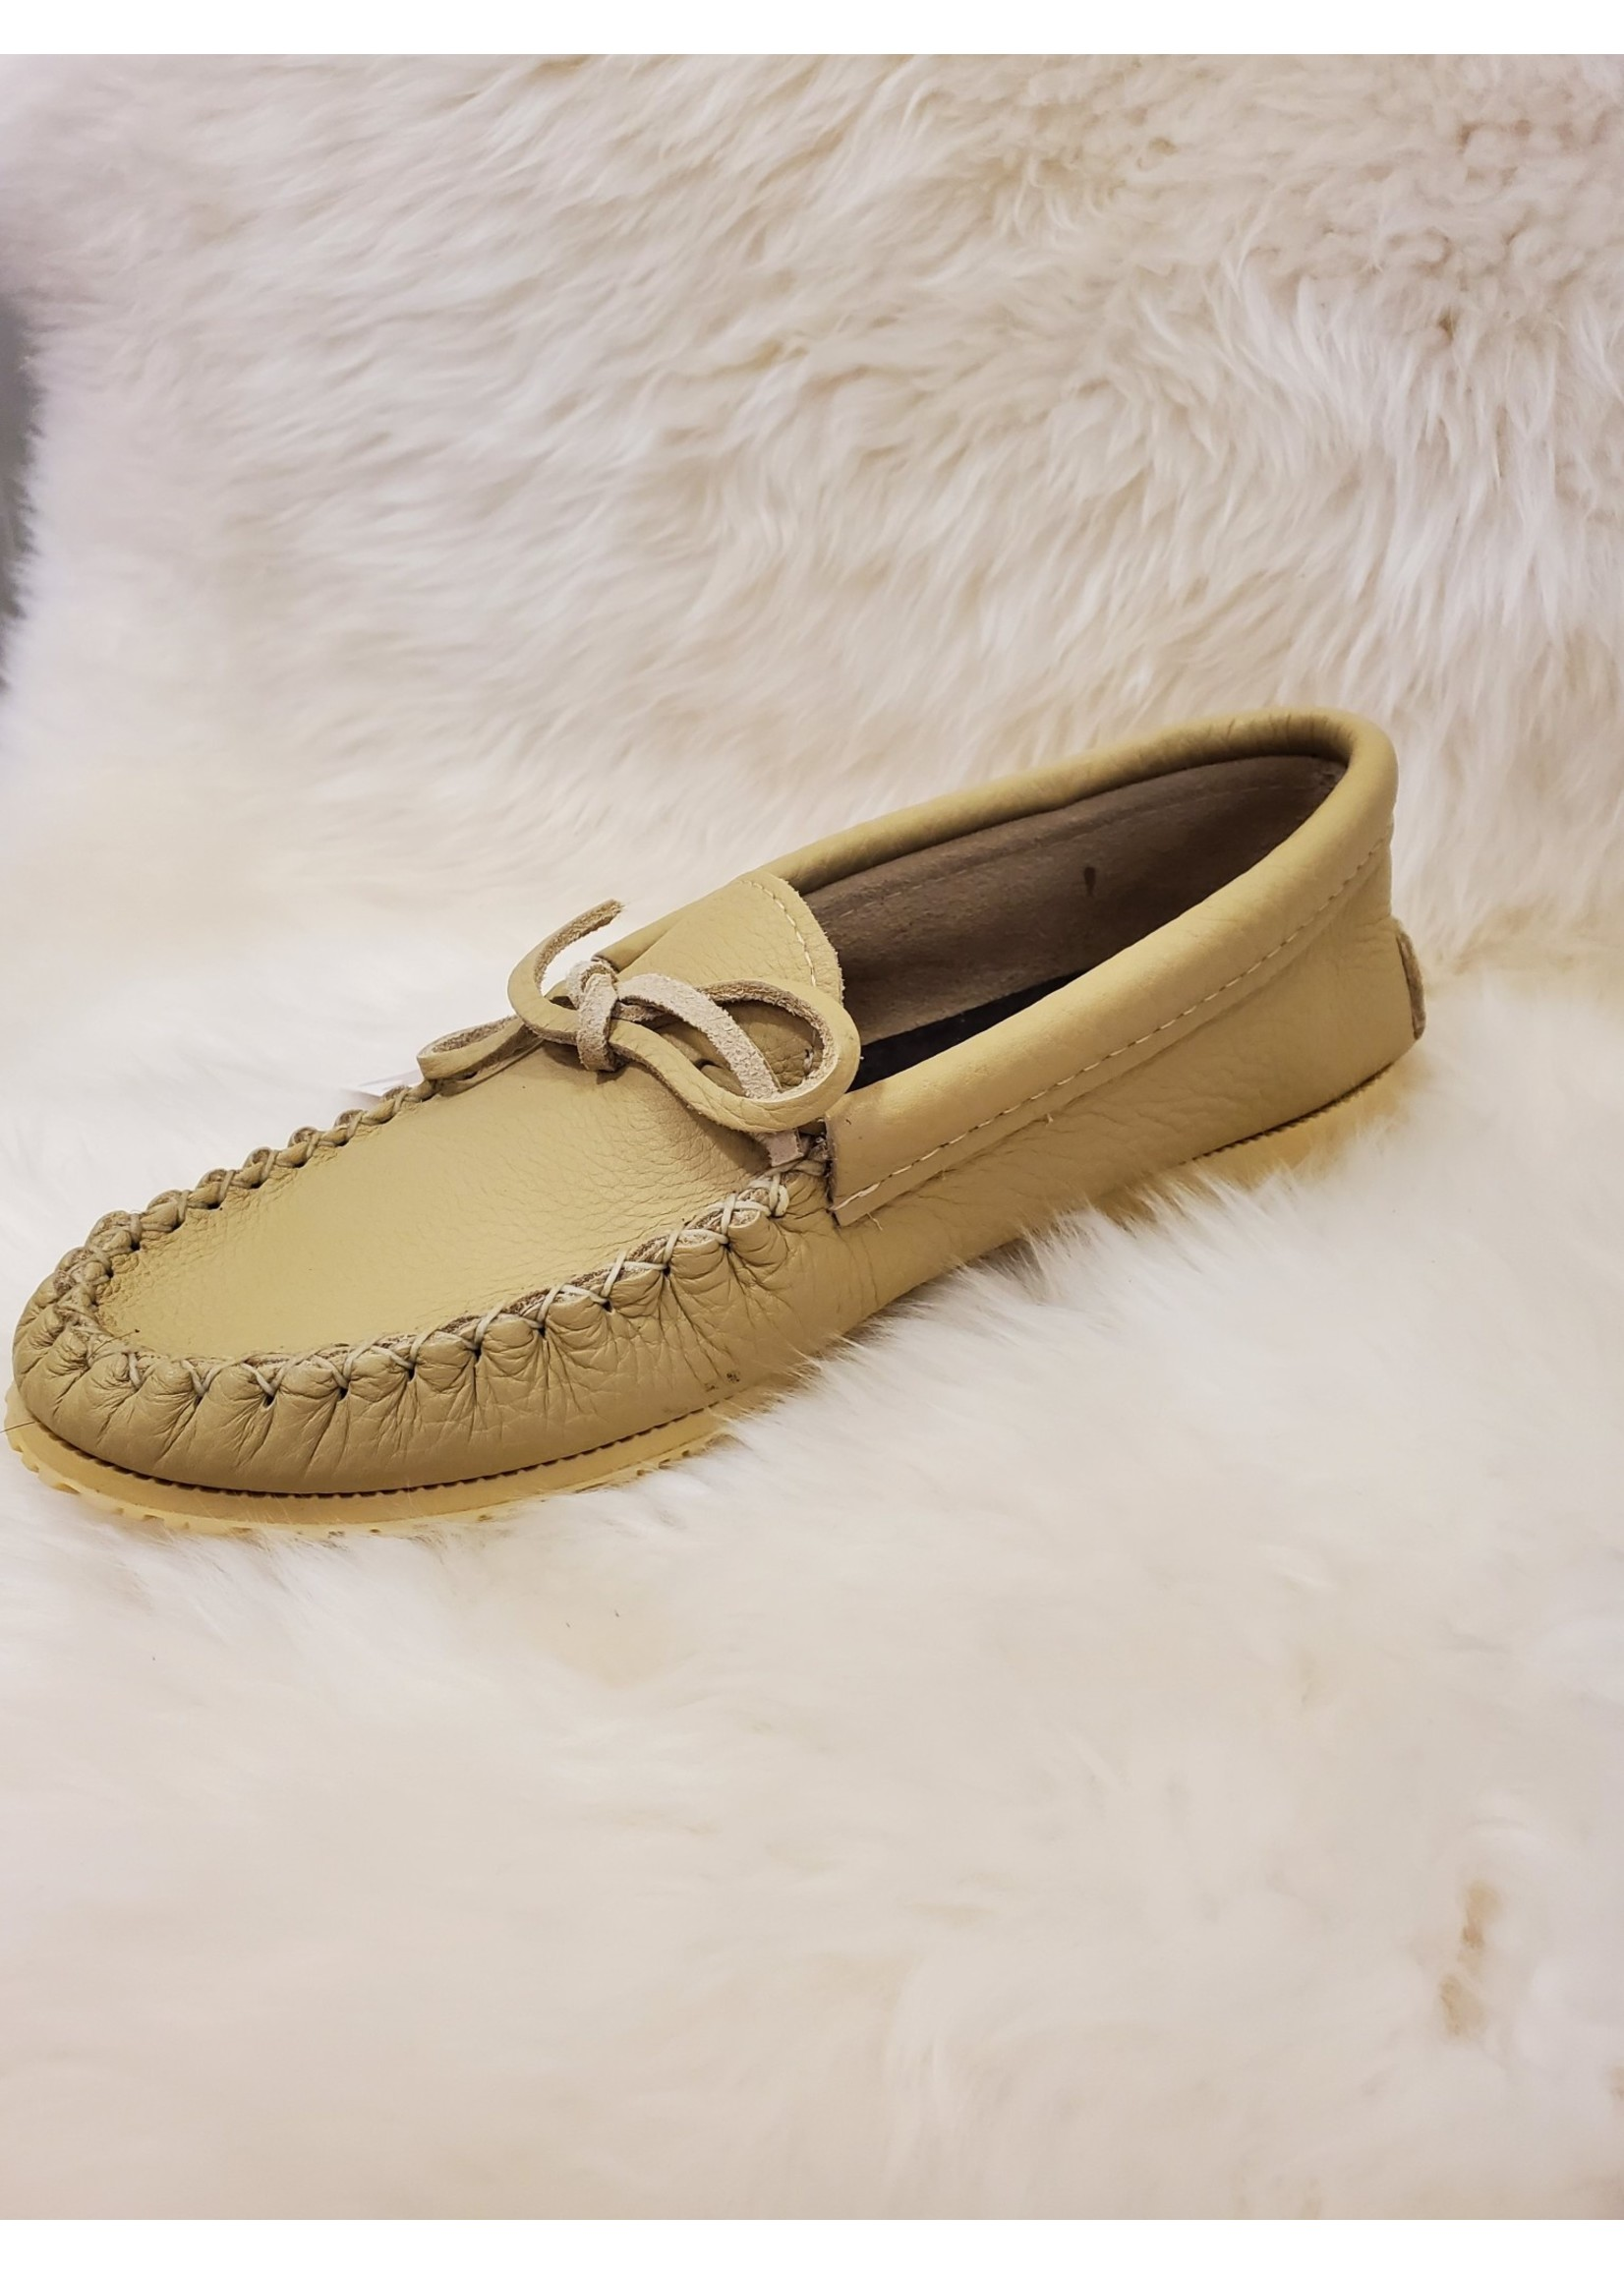 LAURENTIAN CHIEF LEATHER MOCCASIN 1256M